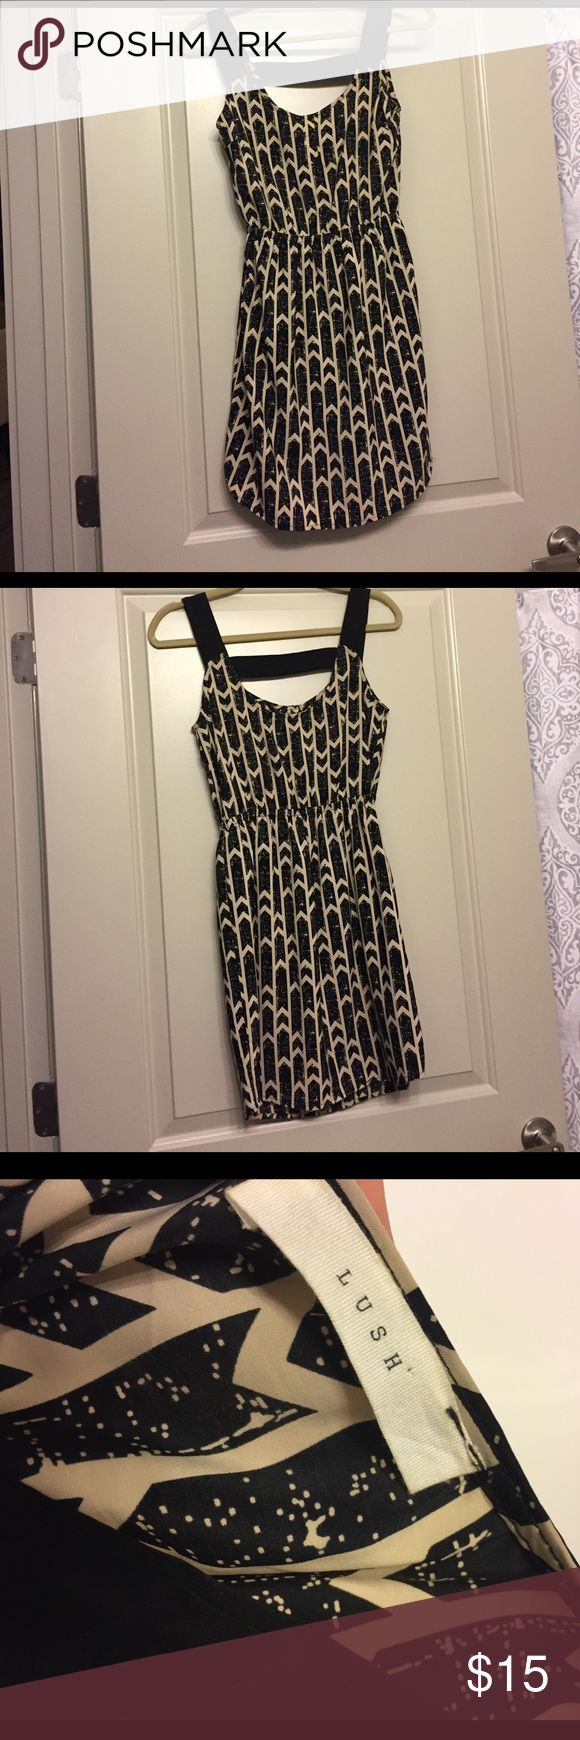 Black and cream summer dress Cute, breezy dress. Great for summer parties. Only won a couple times. Perfect condition. Francesca's Collections Dresses Midi